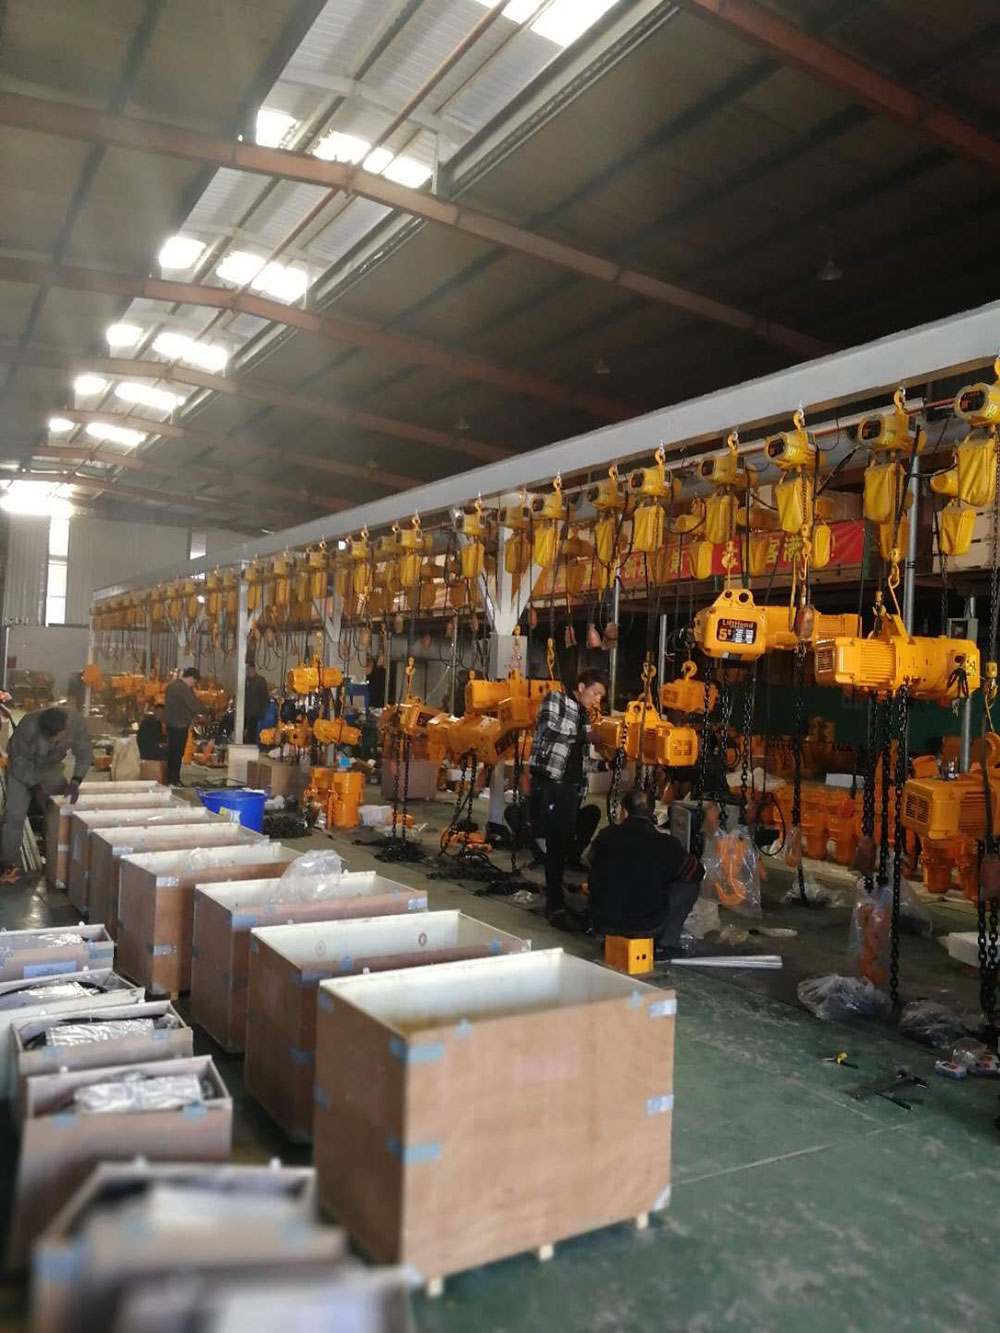 015-MHTOOL-WKTO-Electric-Chain-Hoist-Production-3